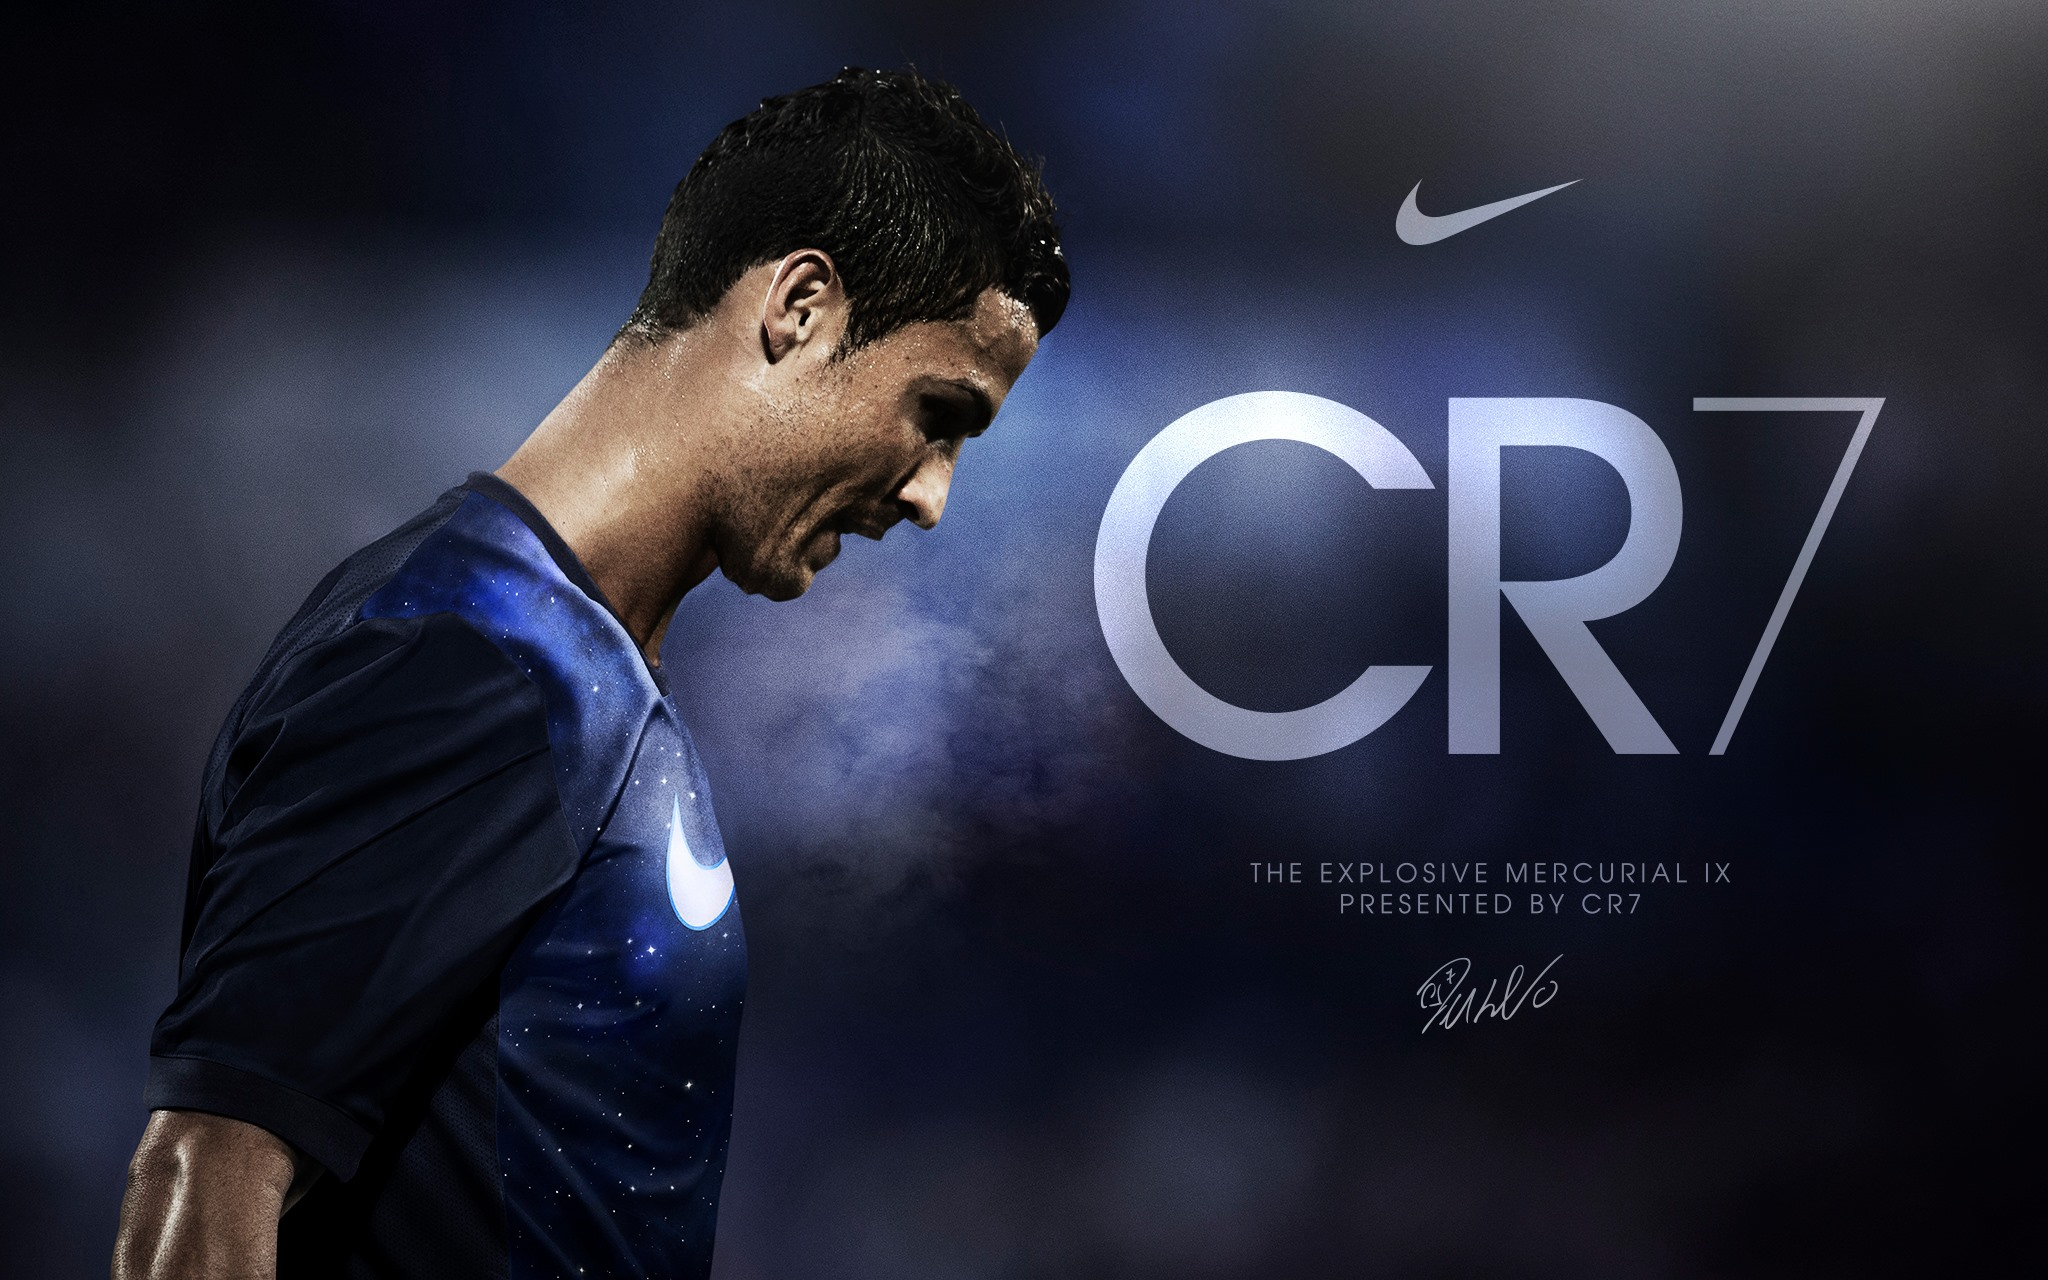 Top Cr7 Wallpaper Images for Pinterest 2048x1280